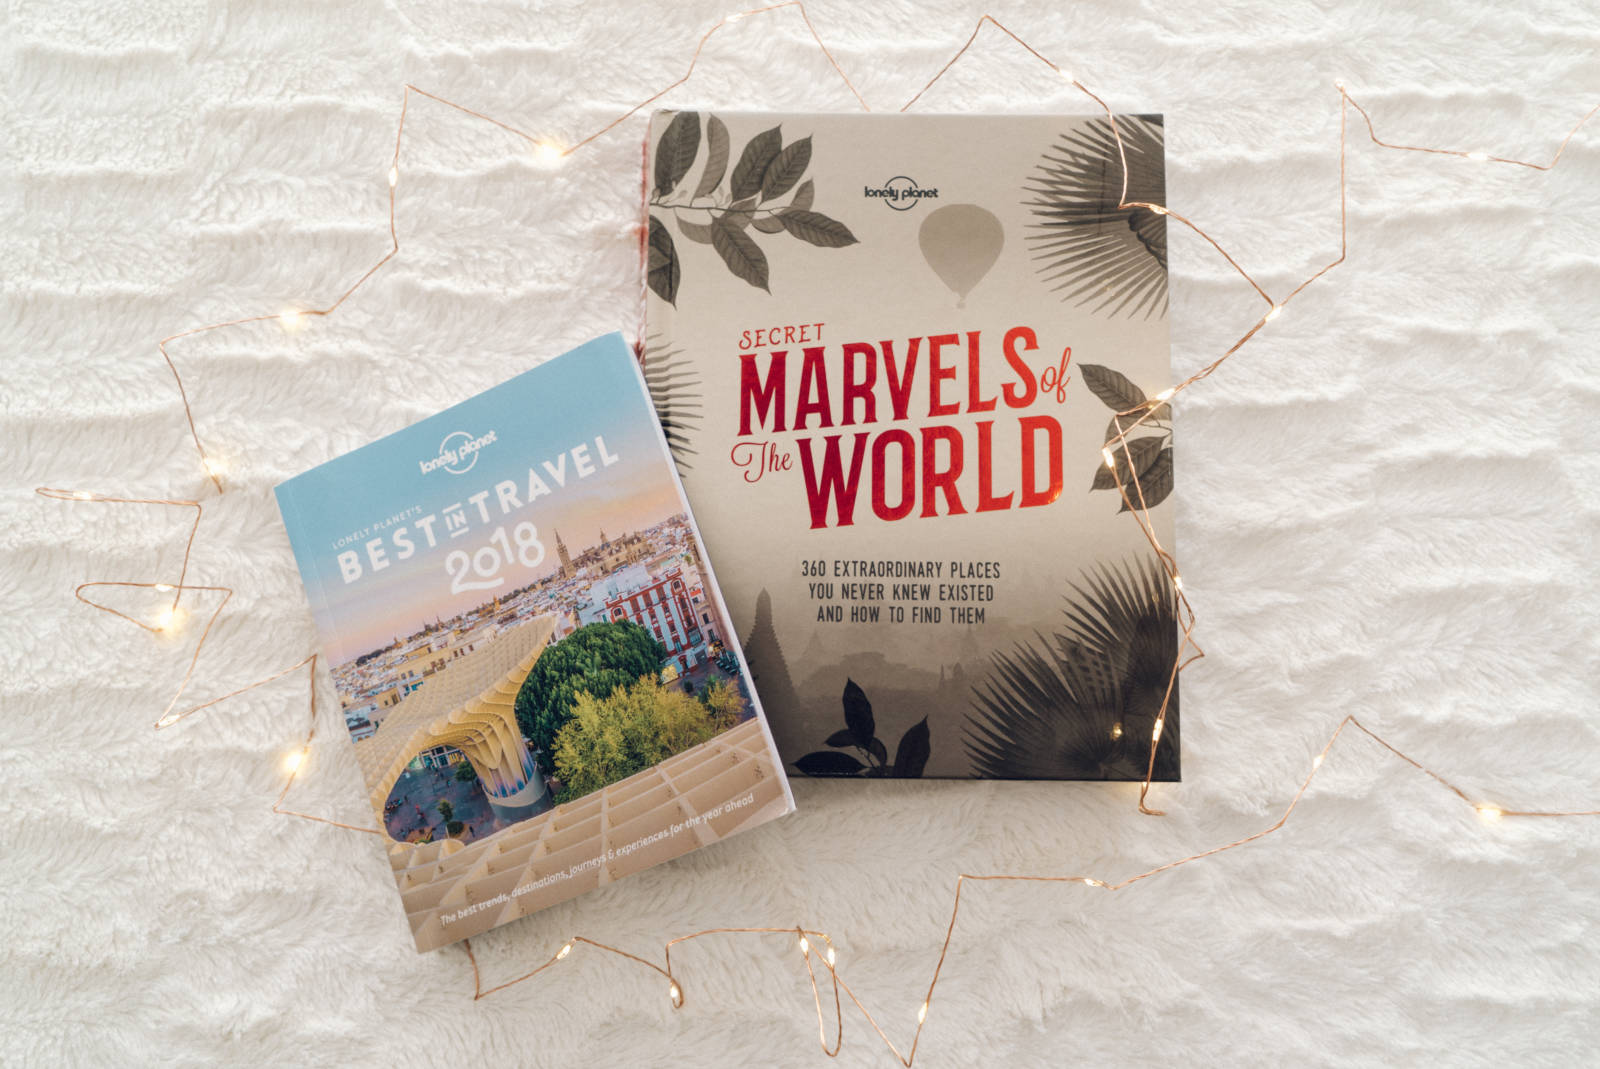 BEST Last Minute Travel Gift Ideas for 2017 Holidays_Lonely Planet